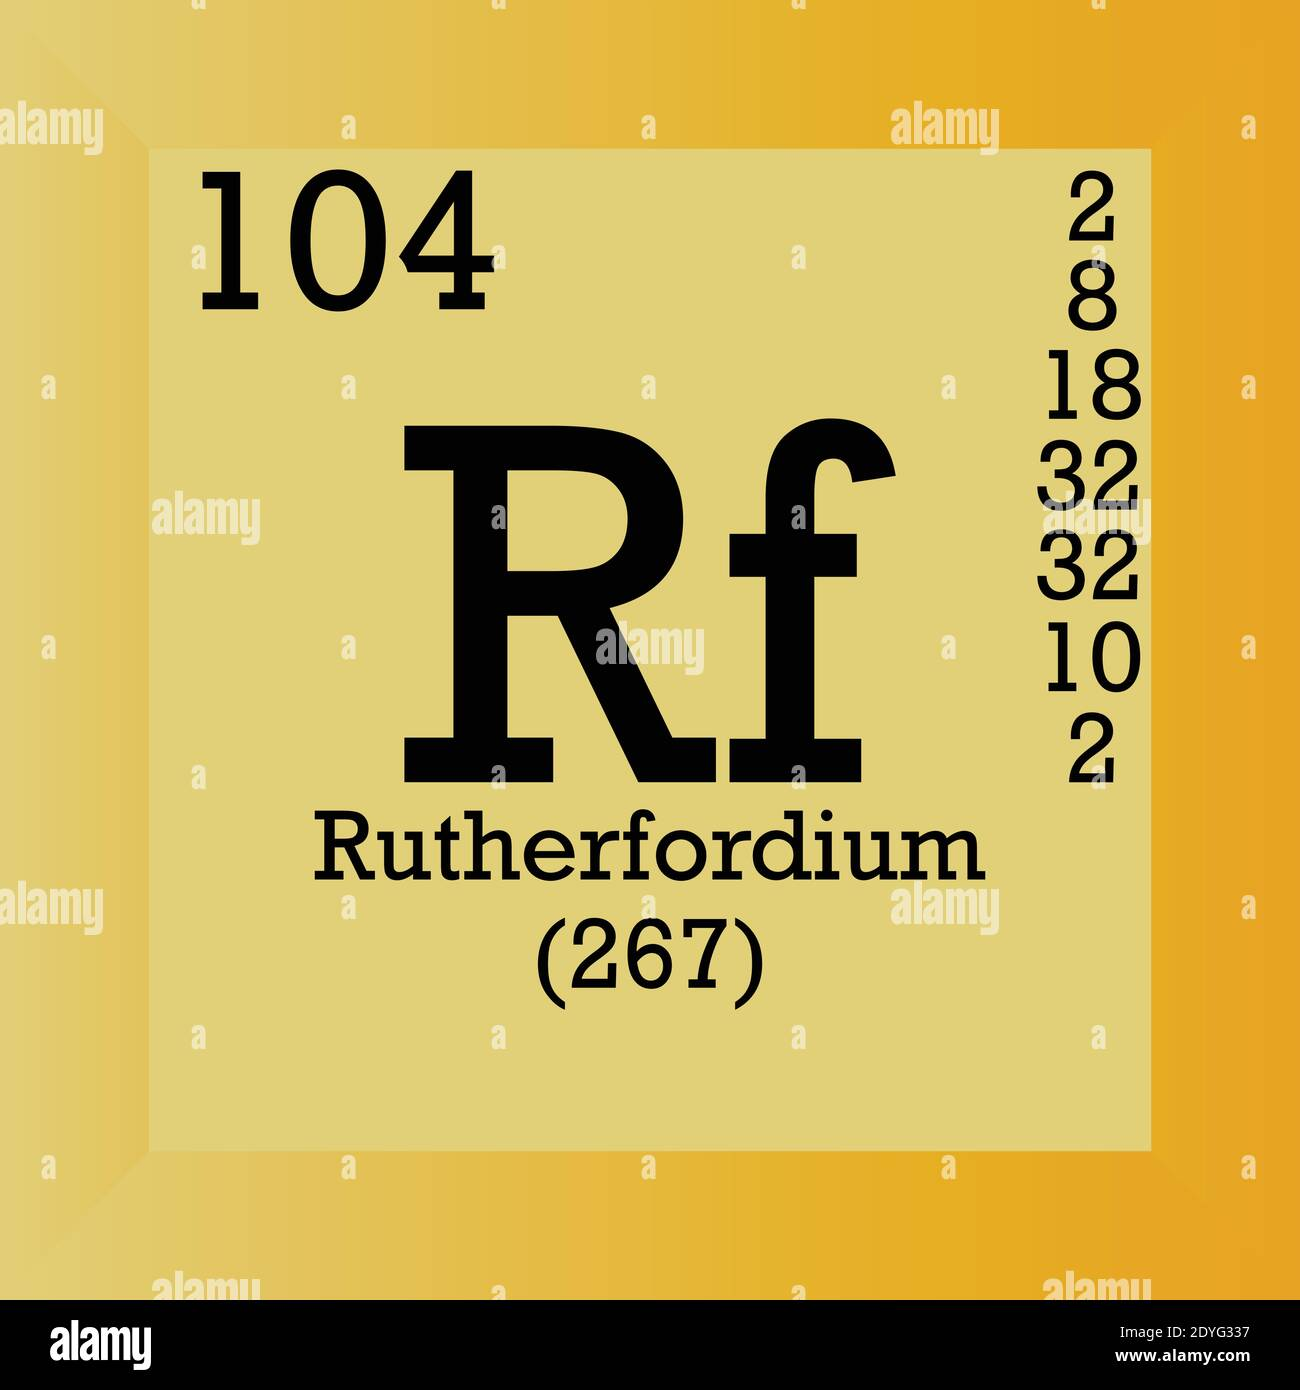 Rf Rutherfordium Chemical Element Periodic Table. Single vector illustration, element icon with molar mass, atomic number and electron conf. Stock Vector